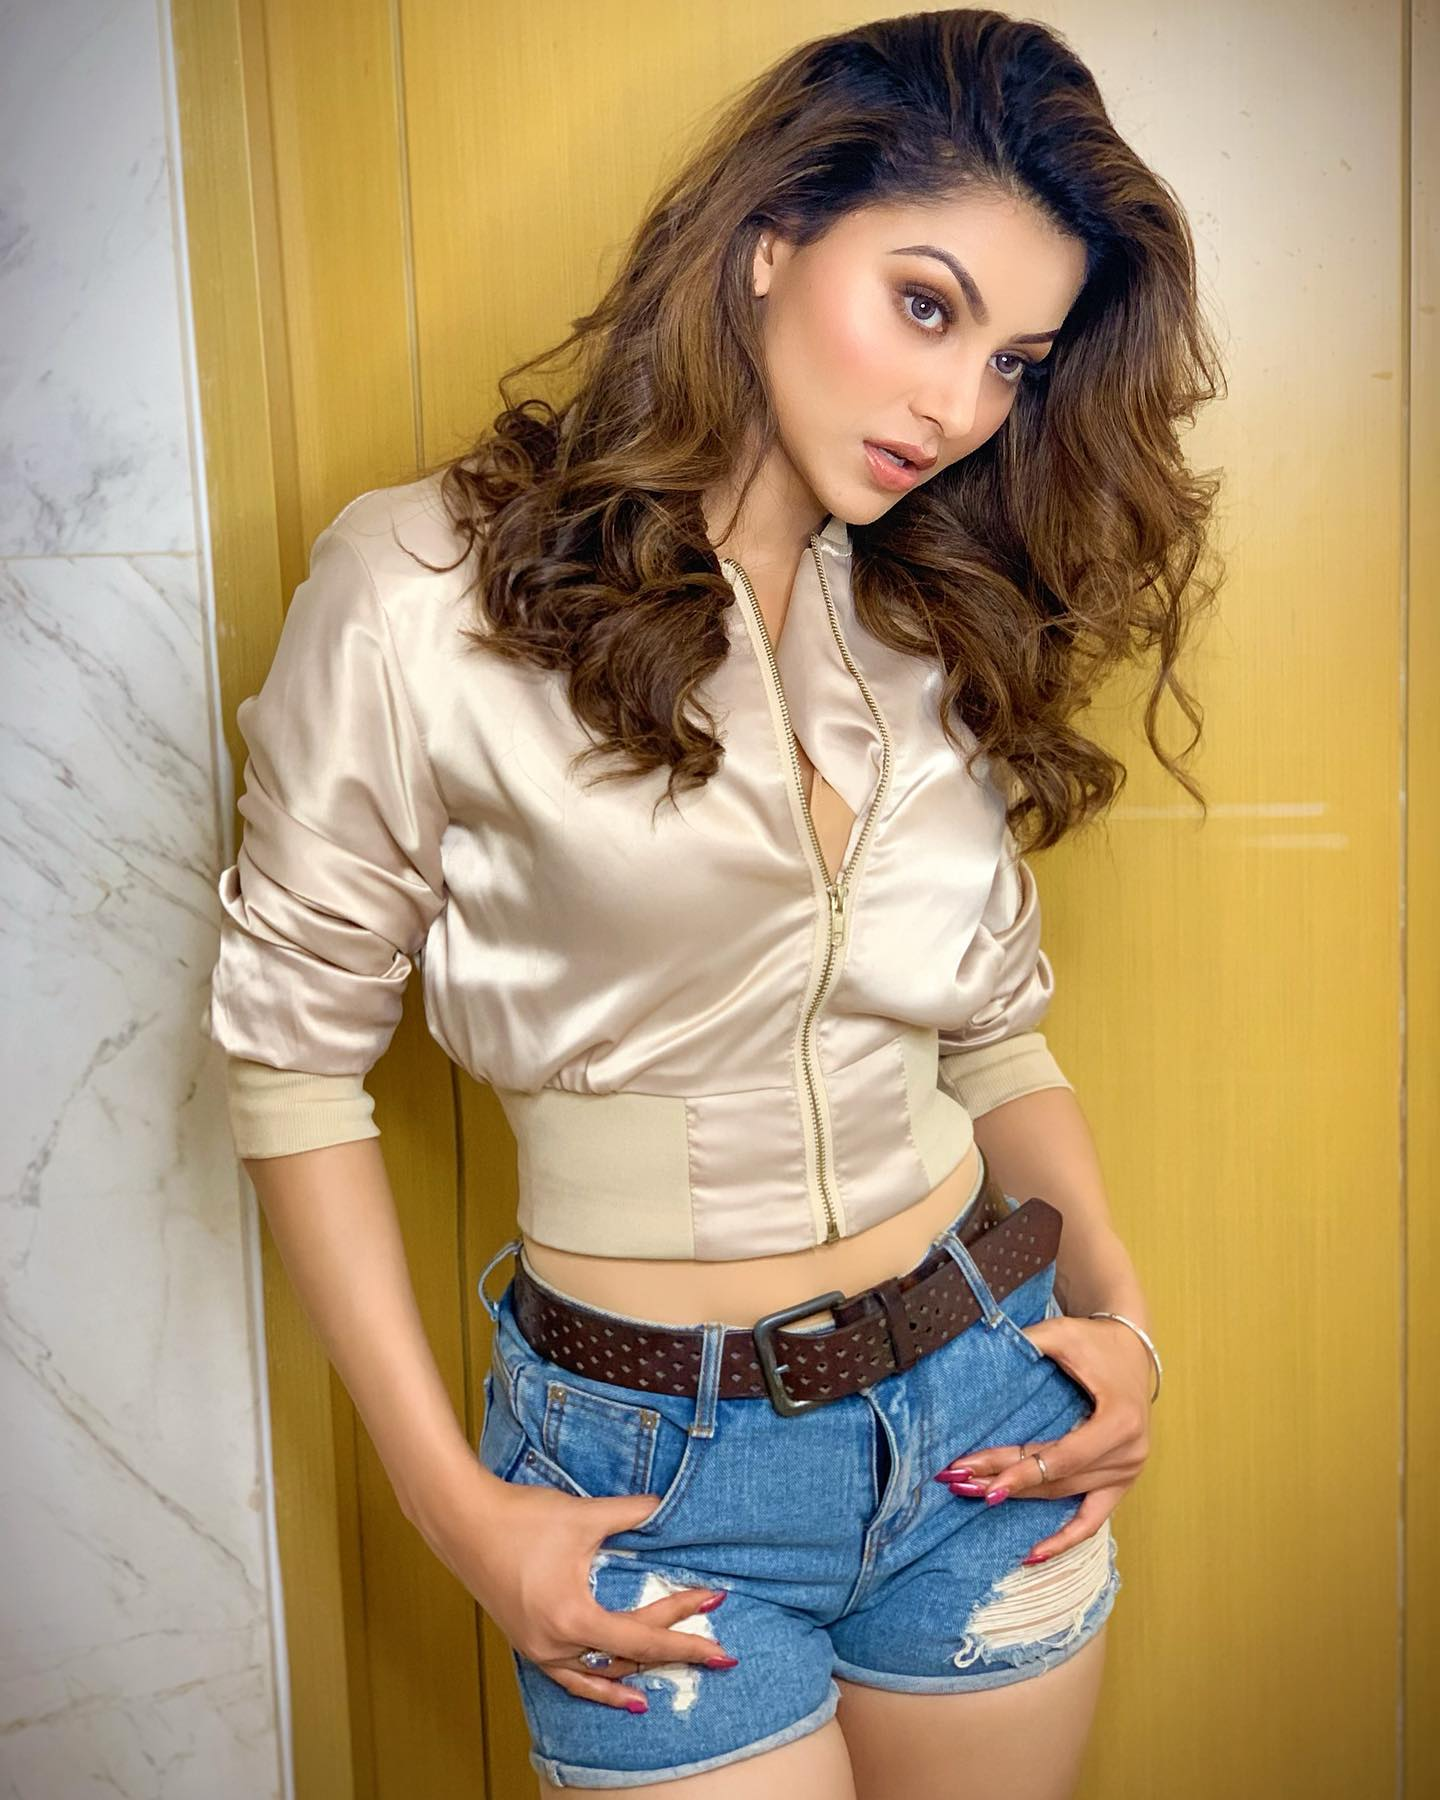 Urvashi Rautela Photos & Images Hd Download | Urvashi Rautela Wallpapers Hd Download